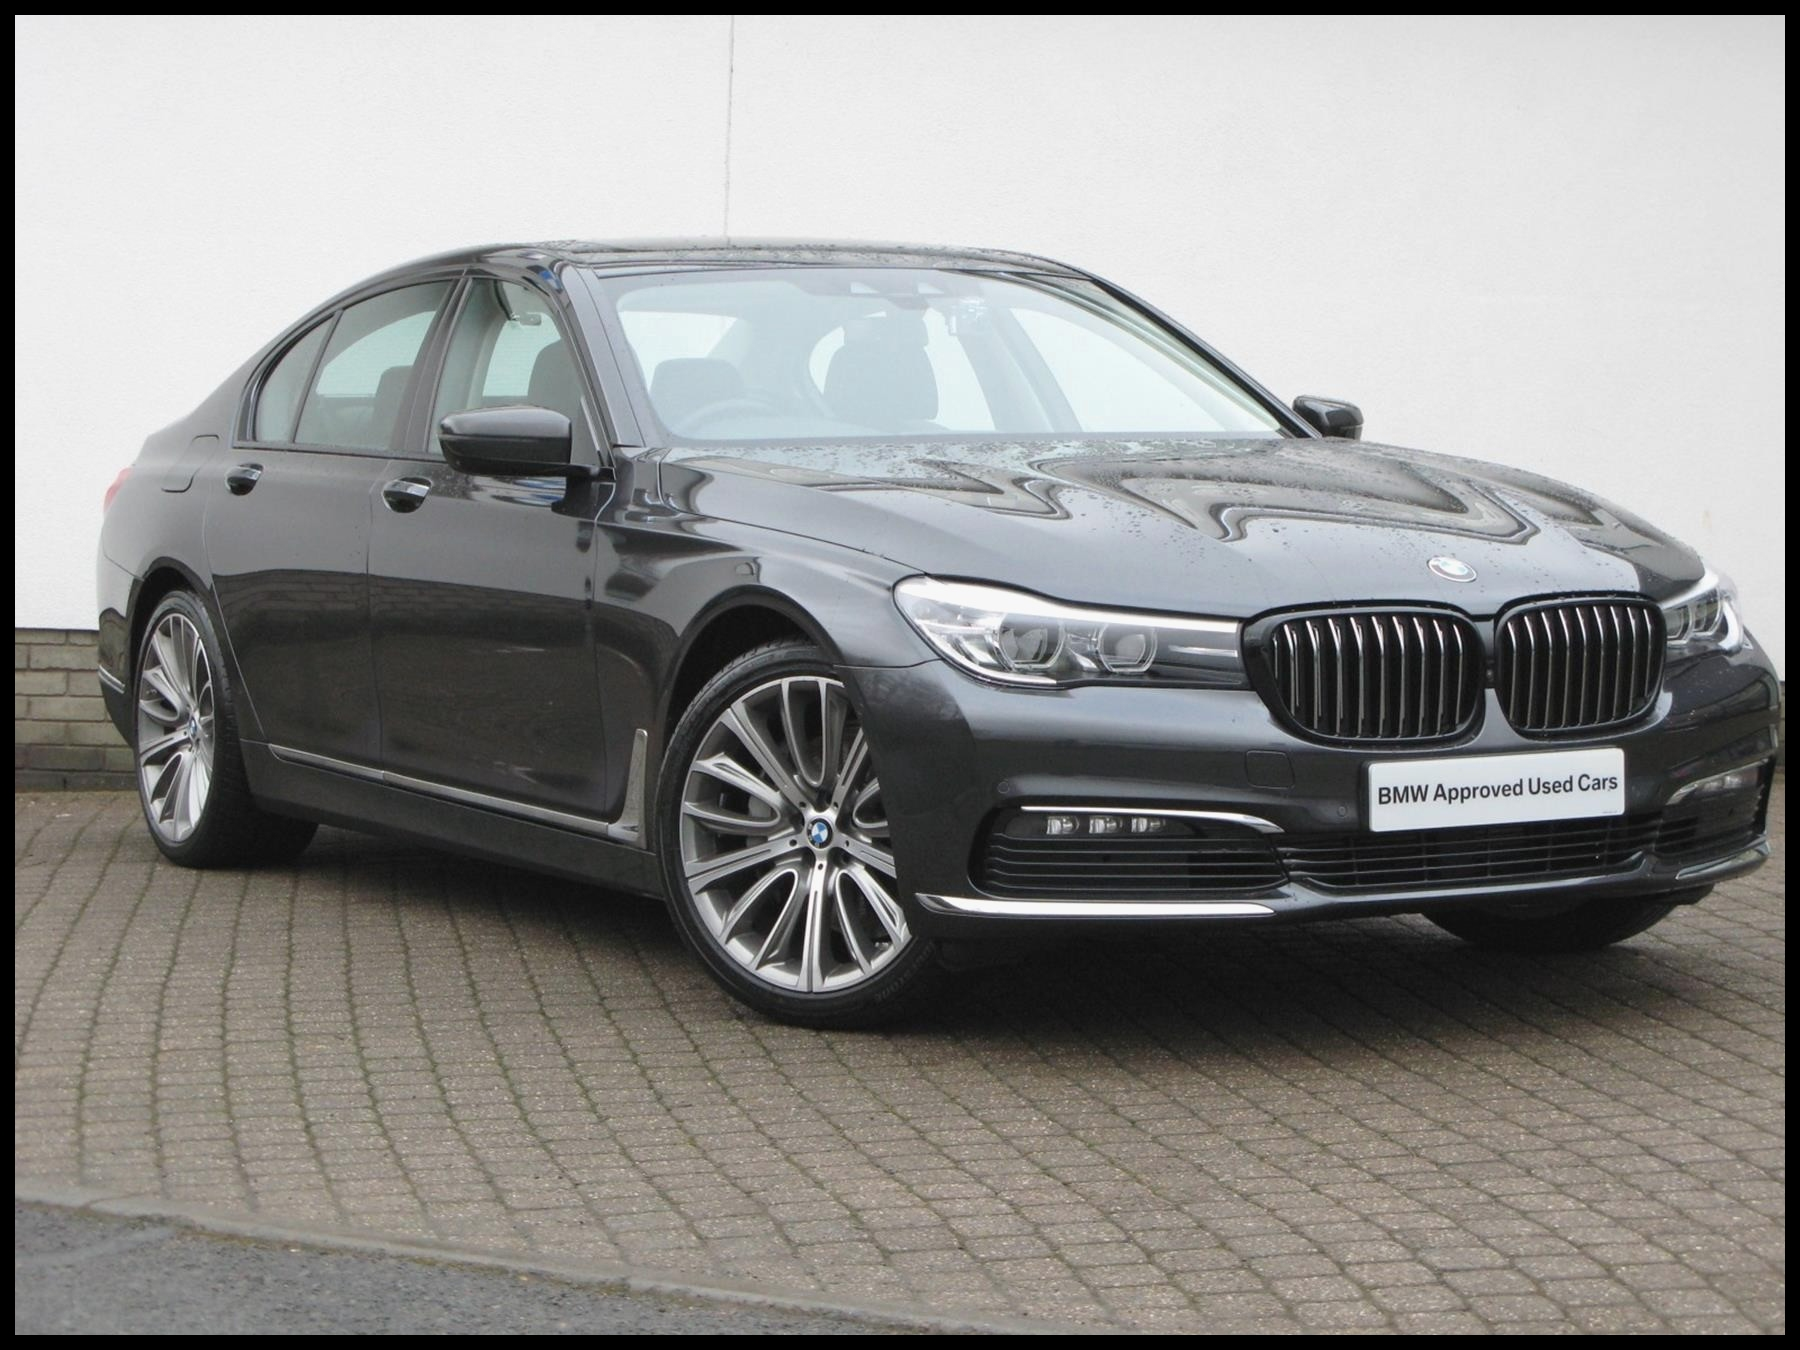 Used 2009 Bmw 750 for Sale Beautiful Latest Used 2017 Bmw 7 Series G11 740d Xdrive